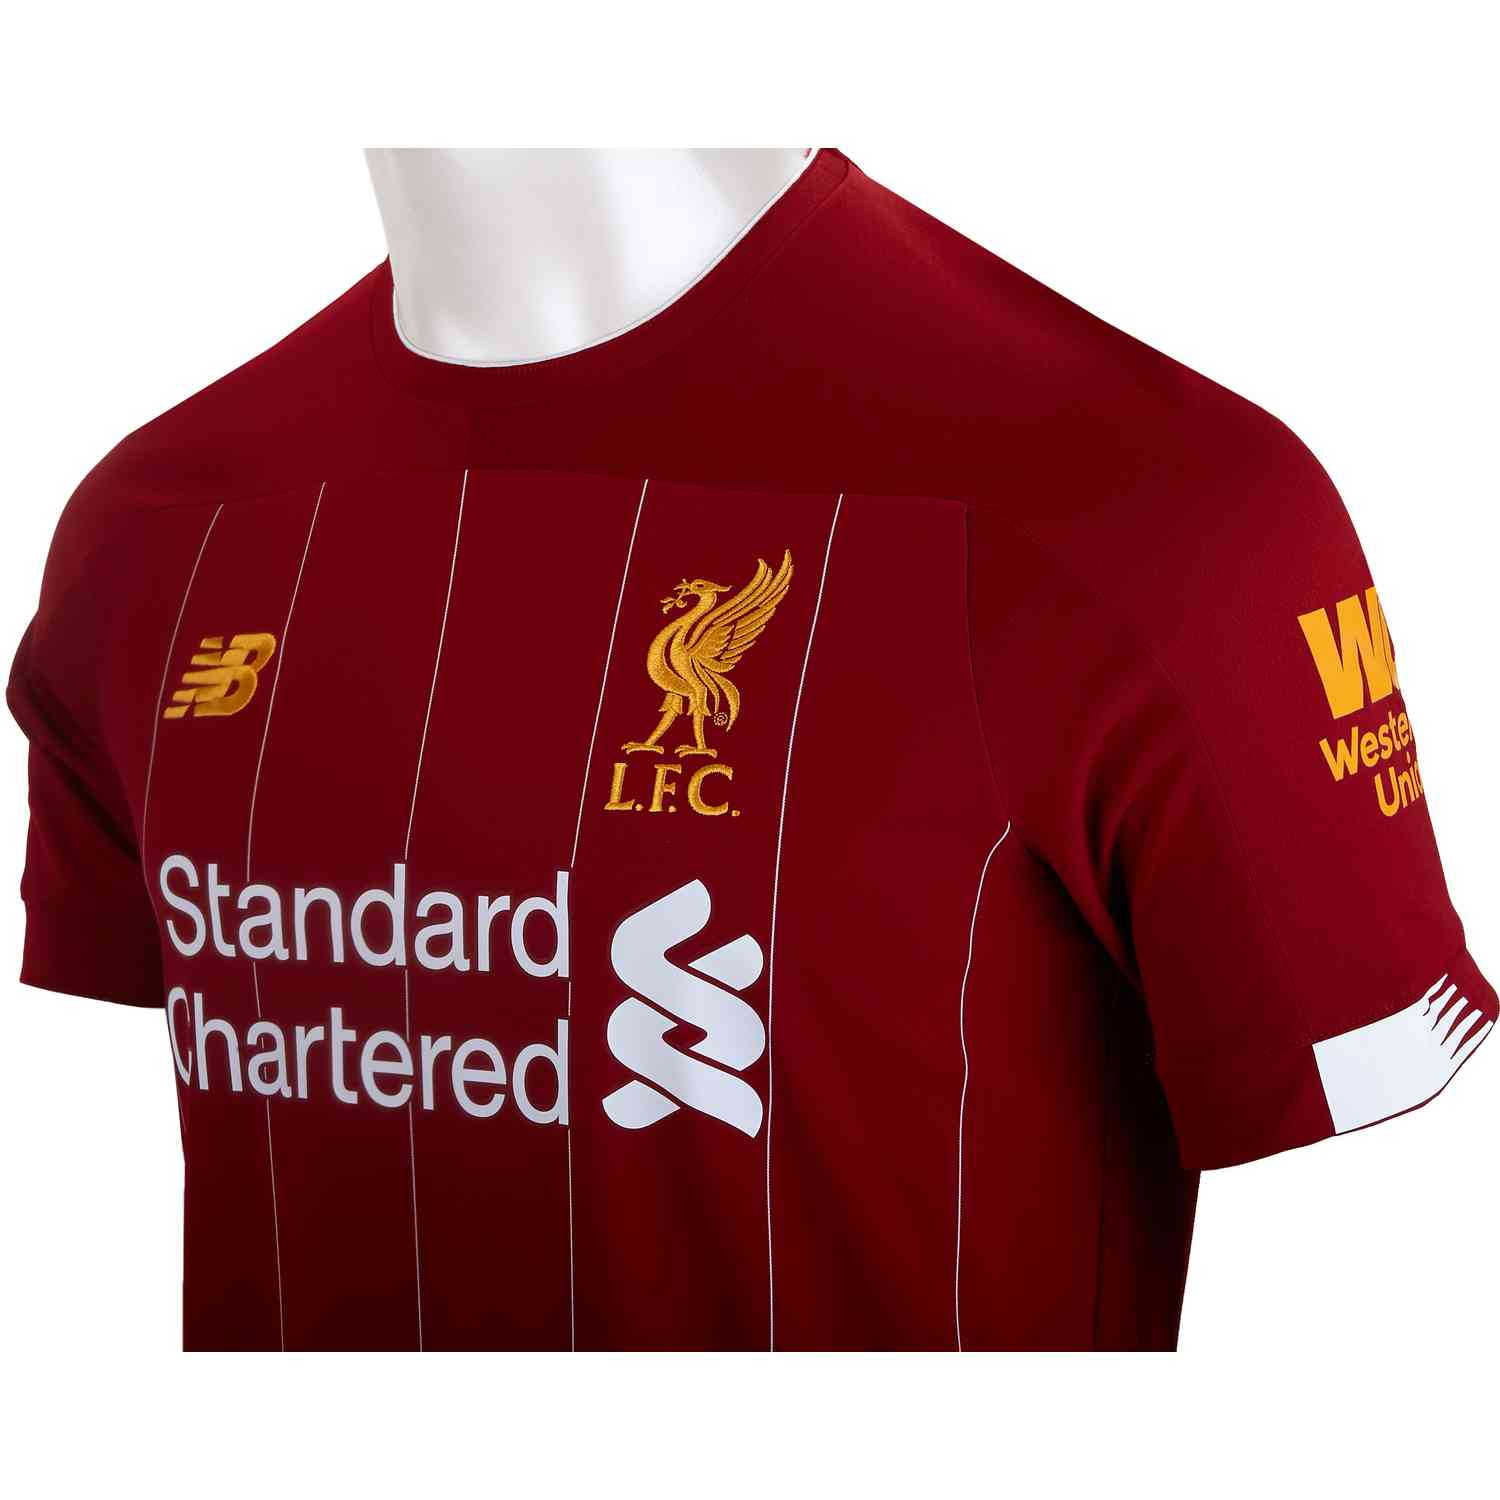 competitive price aeff8 e857f 2019/20 Kids New Balance James Milner Liverpool Home Jersey ...